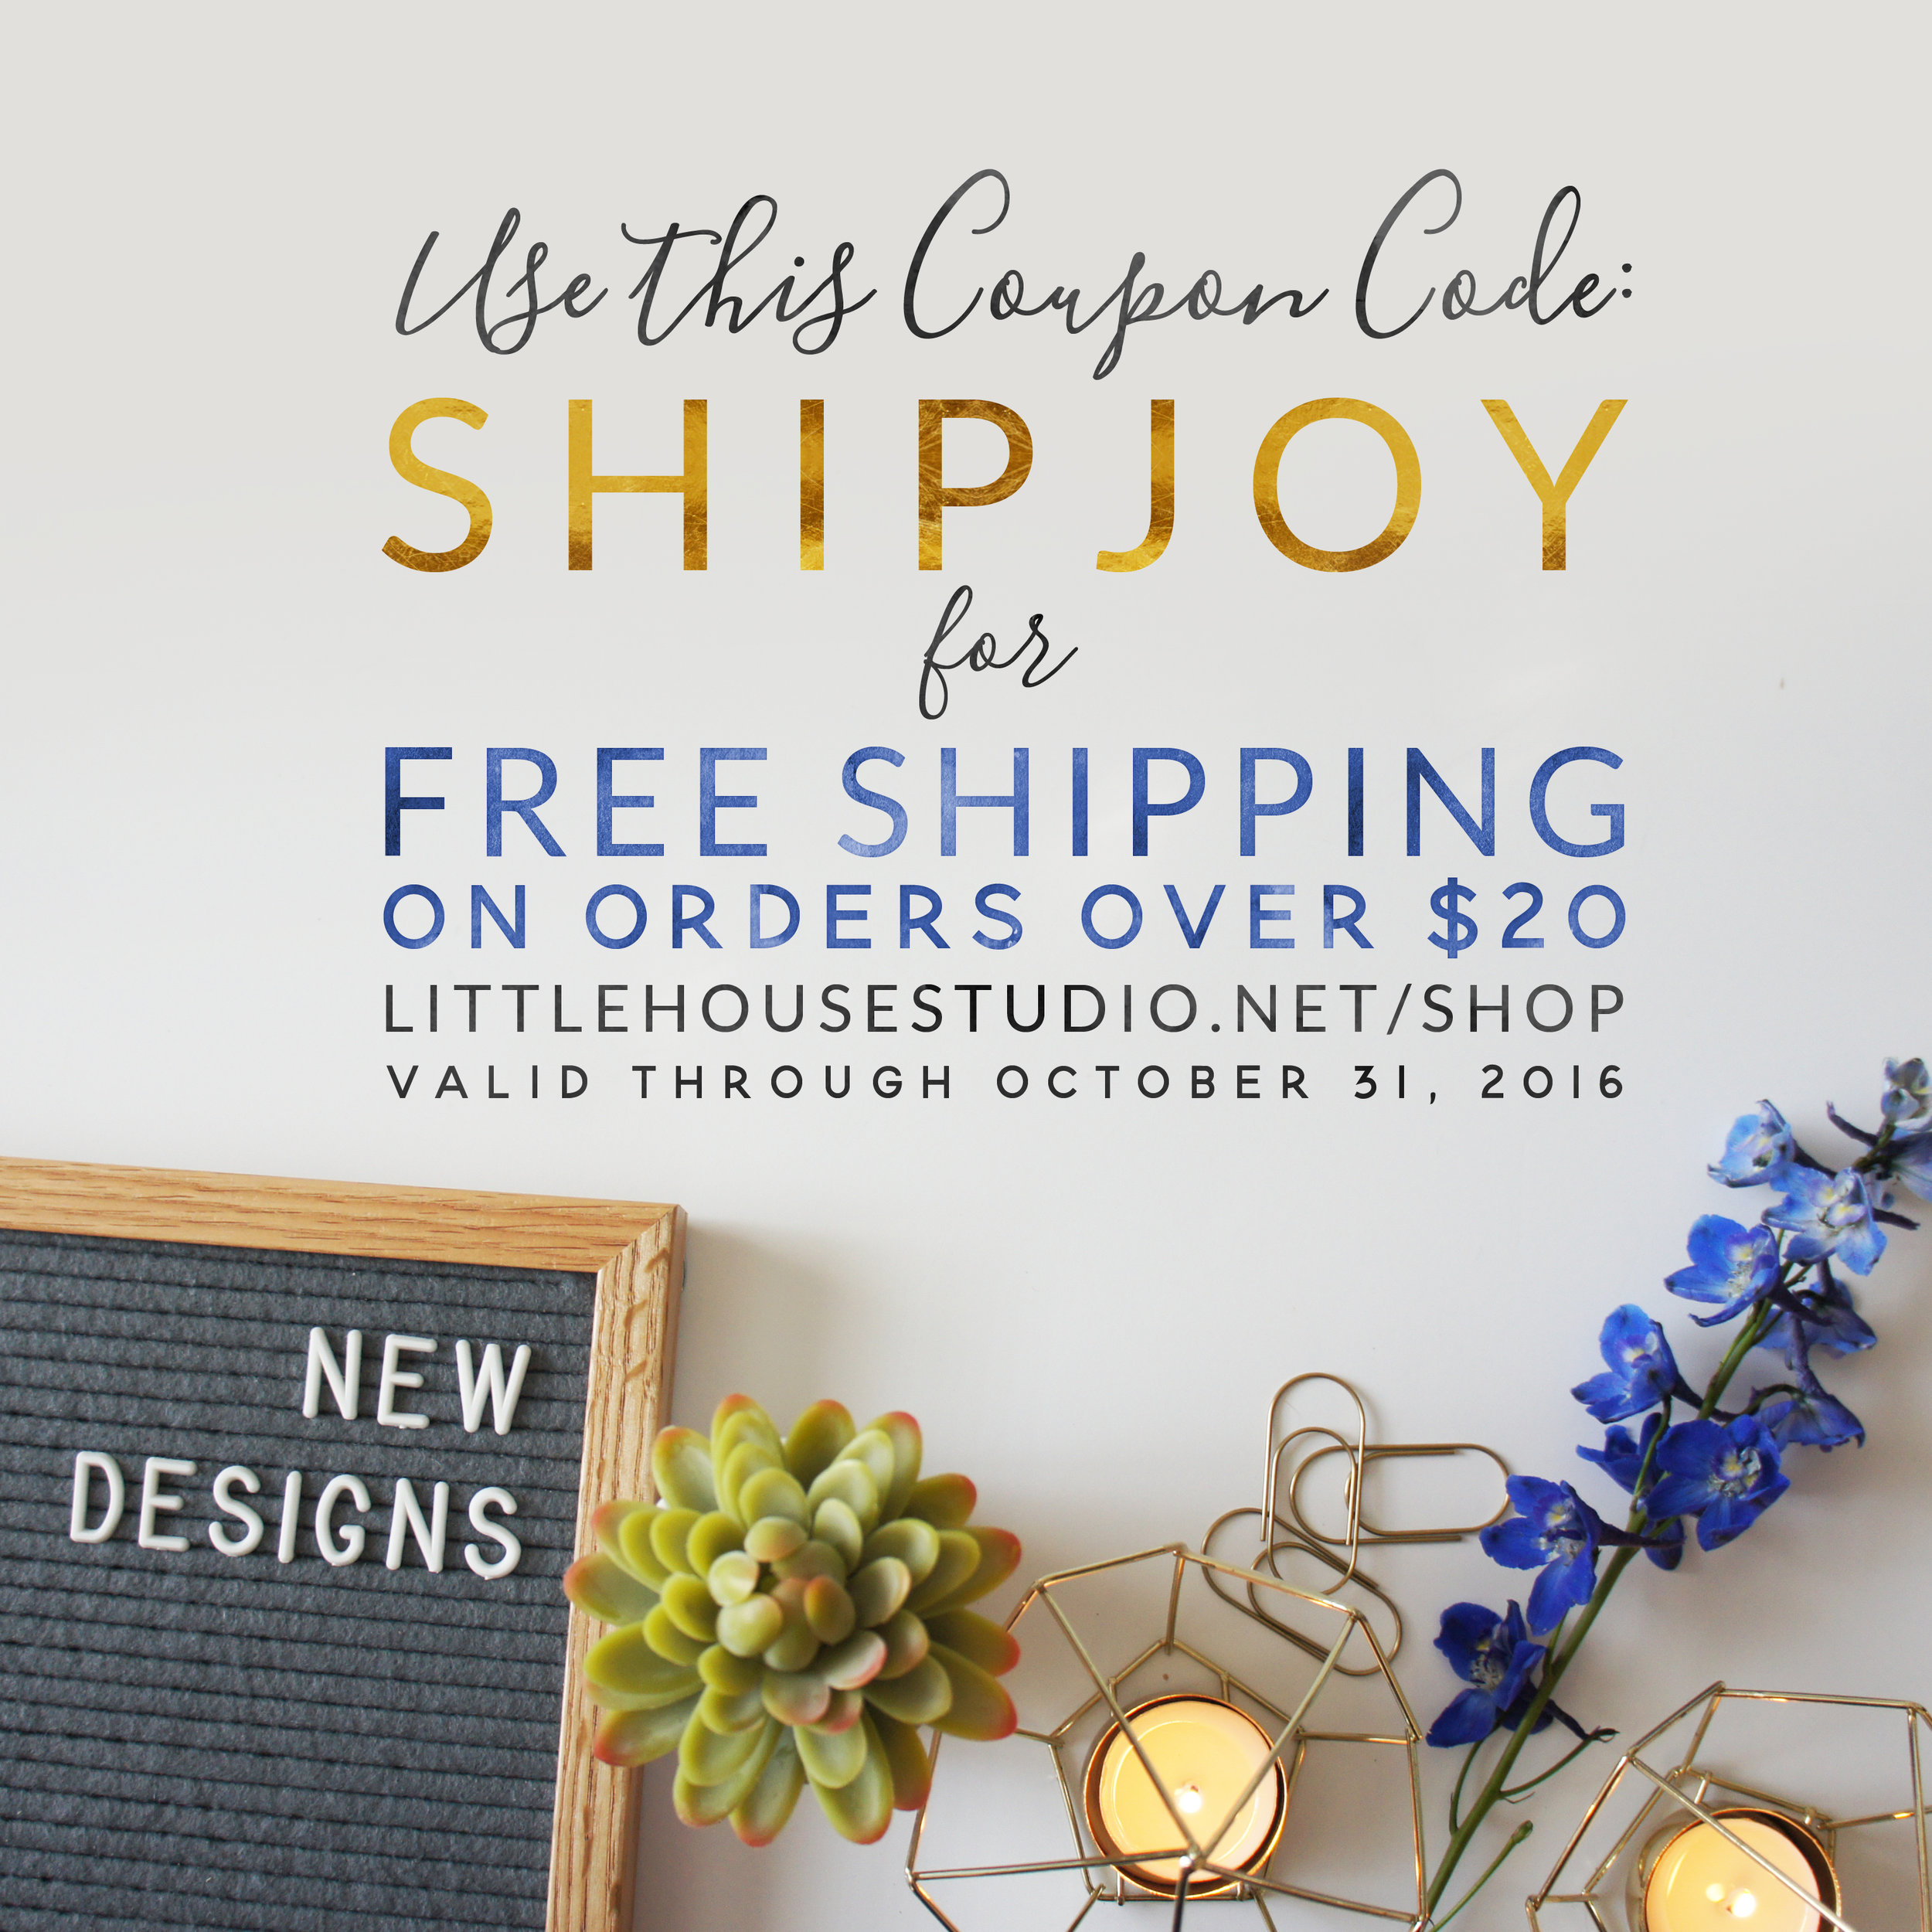 Shop now and get FREE SHIPPING on all orders over $20!